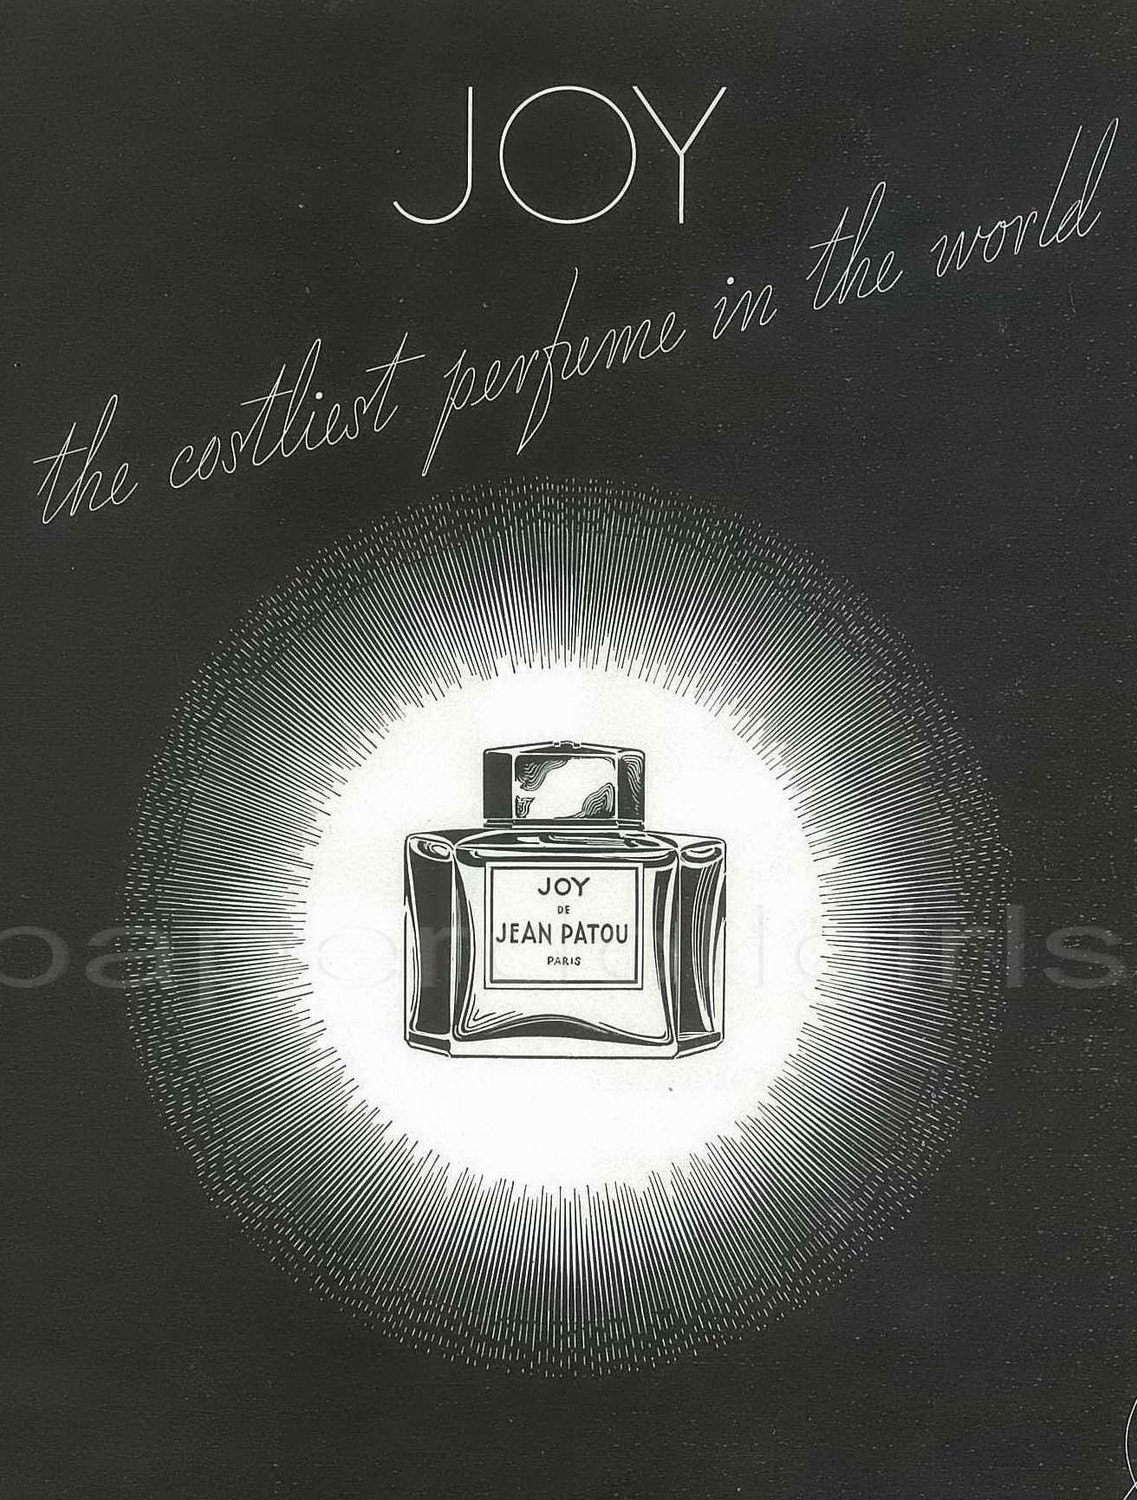 Harpers Bazaar 1936 Magazine Advertisement JOY Perfume by JEAN PATOU Perfumes Paris